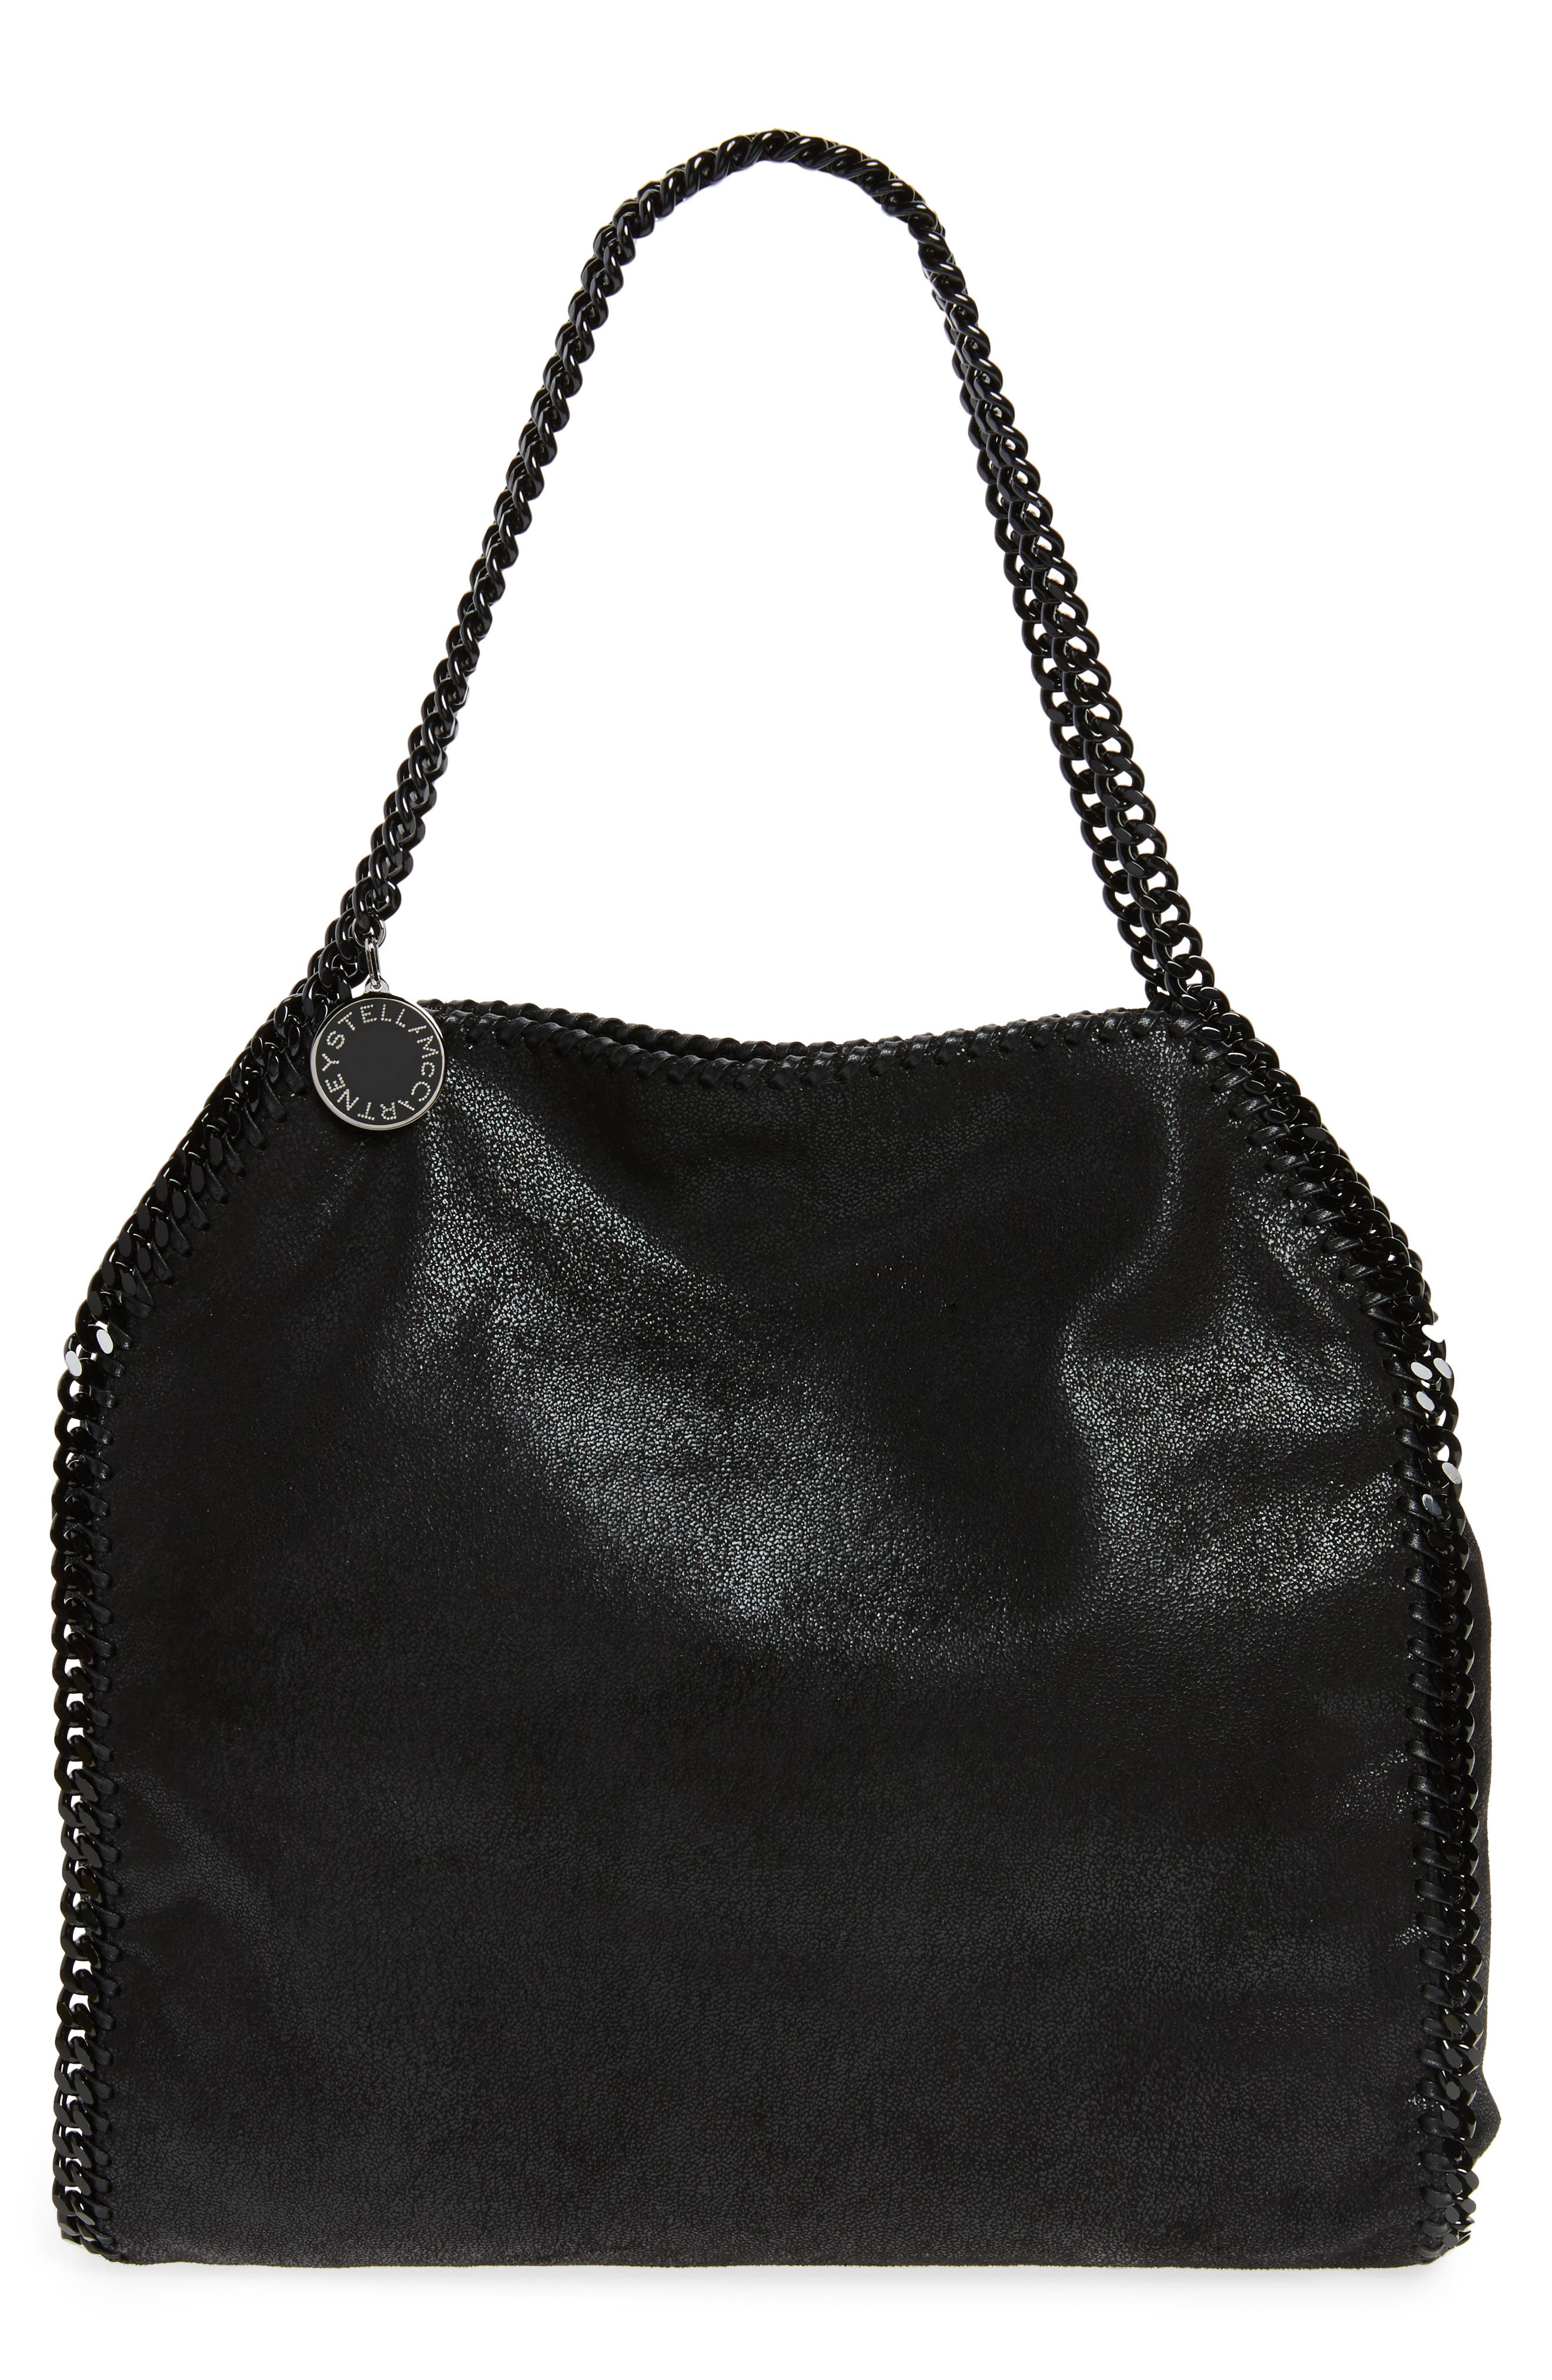 Stella Mccartney Small Falabella Shaggy Deer Faux Leather Tote - Black